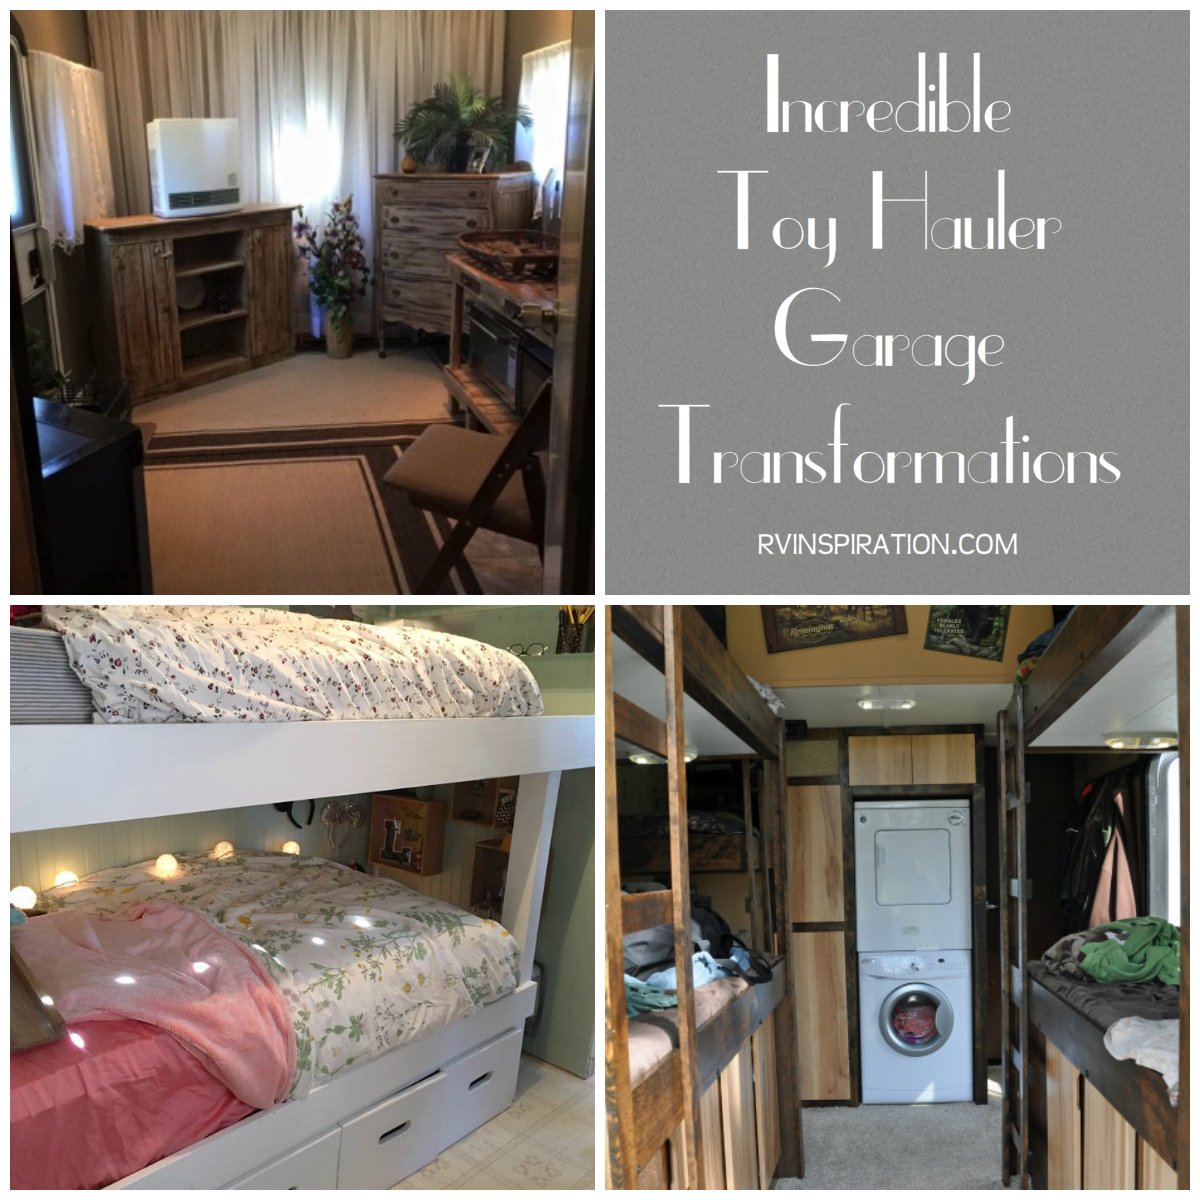 Full Time RVers Need To Maximize Living Space, And One Way Many Choose To  Do This Is By Converting A Toy Hauler Garage Into An Extra Bedroom, Living  Area, ...